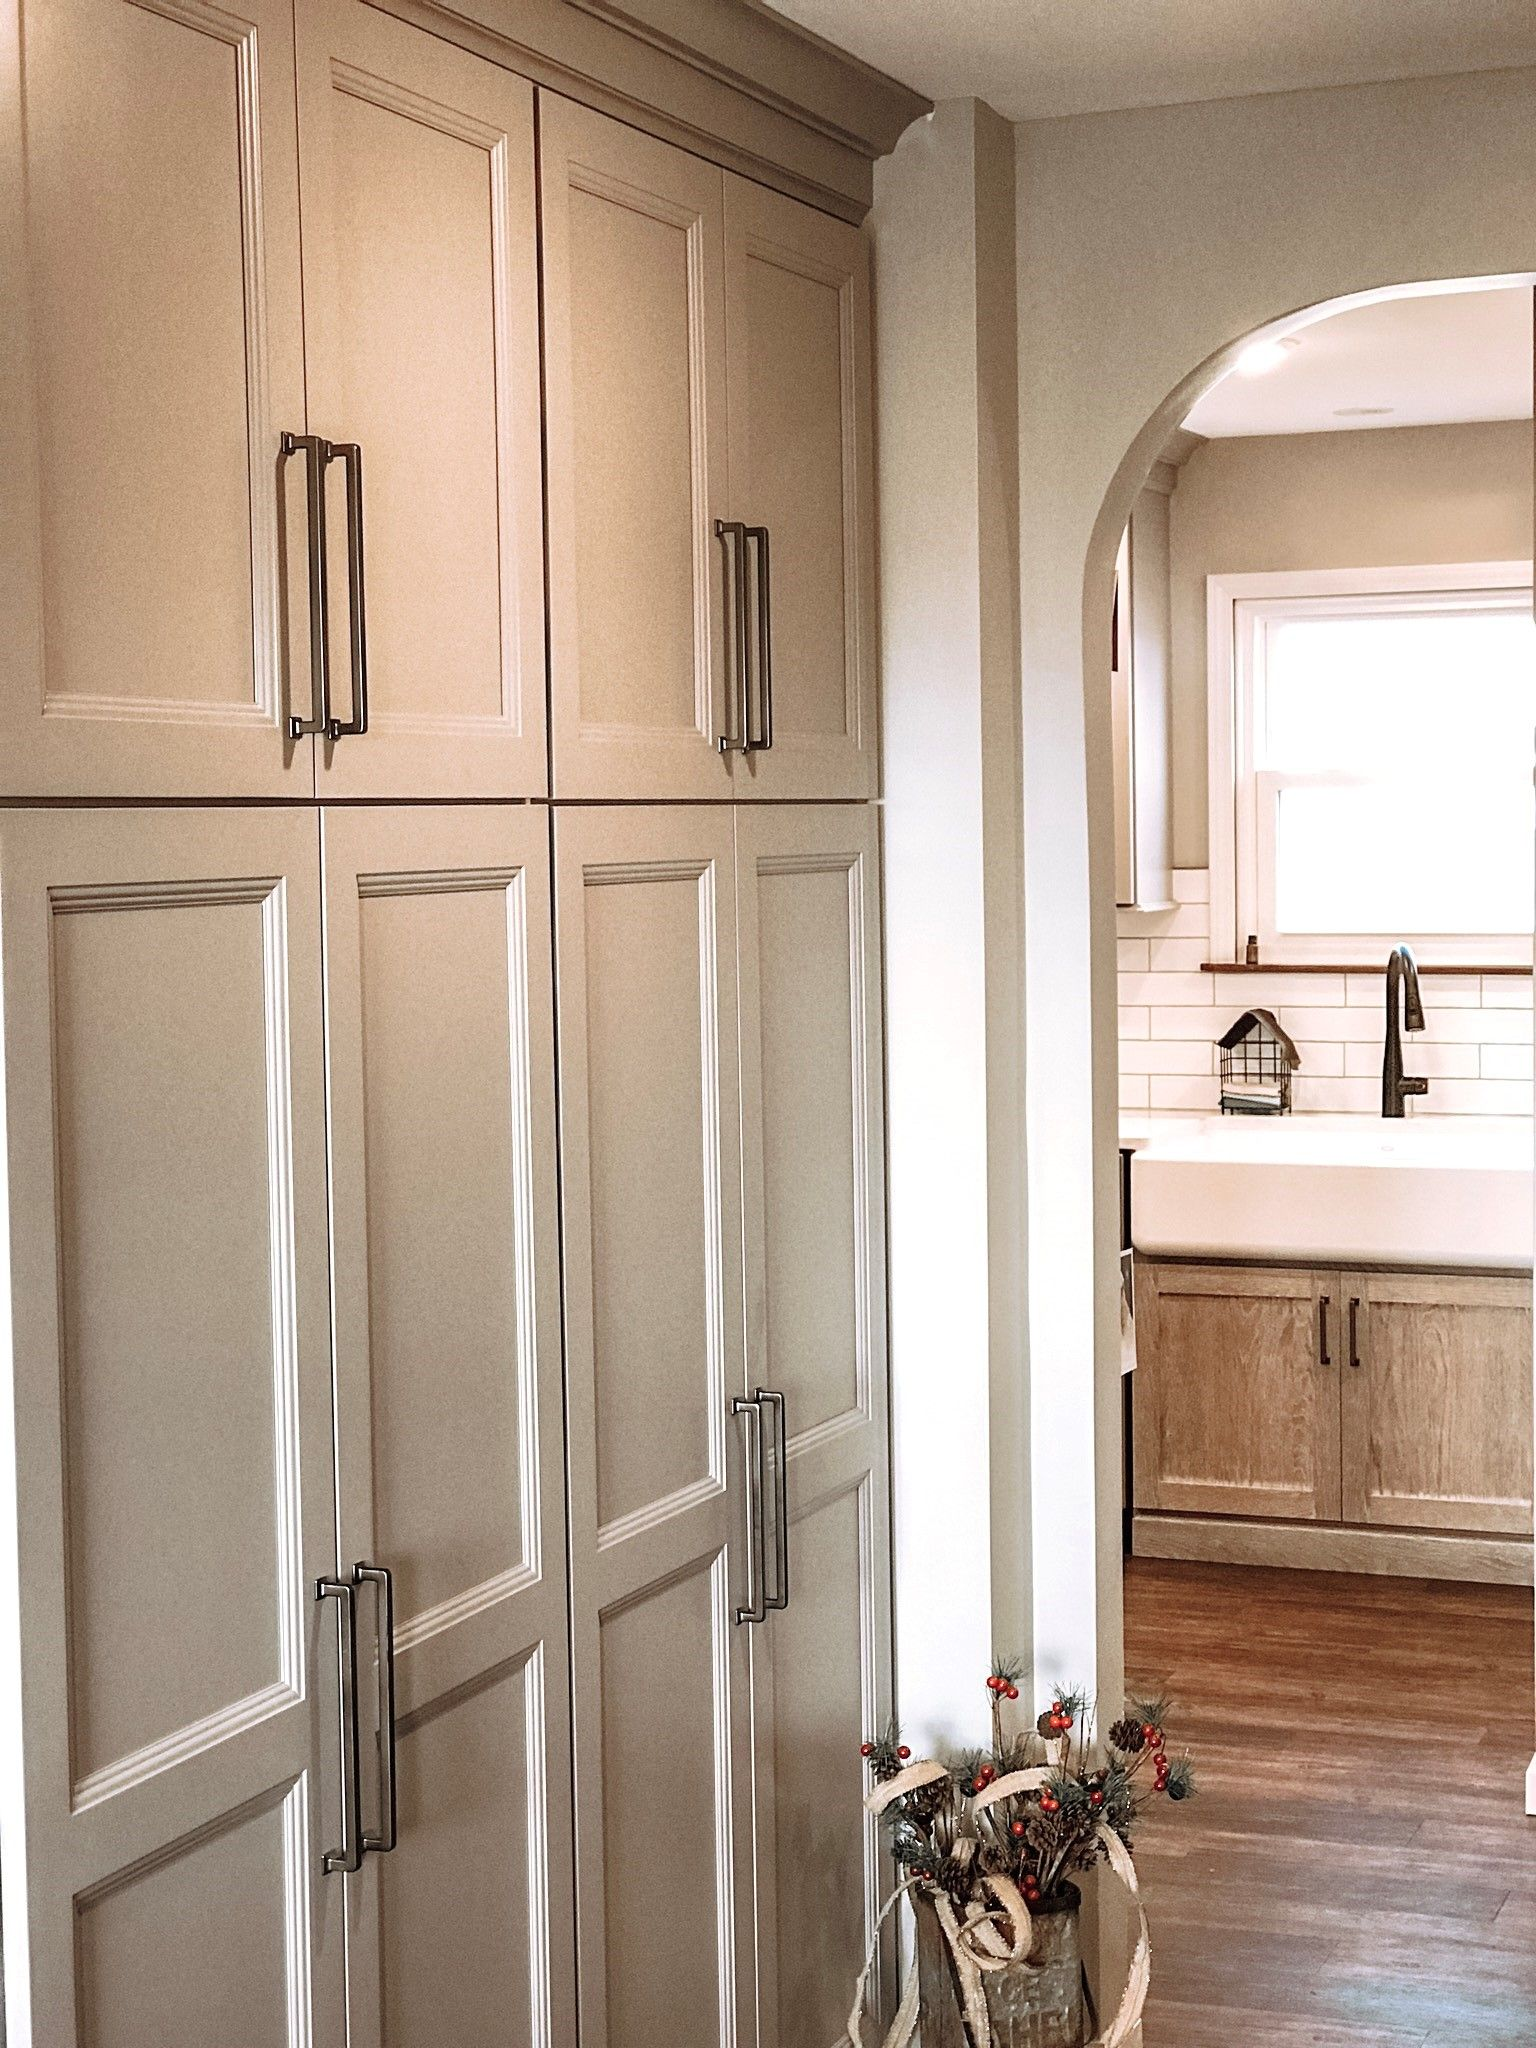 Pantry Storage Full Wall Cabinets Pantry Wall Wall Cabinet Pantry Storage